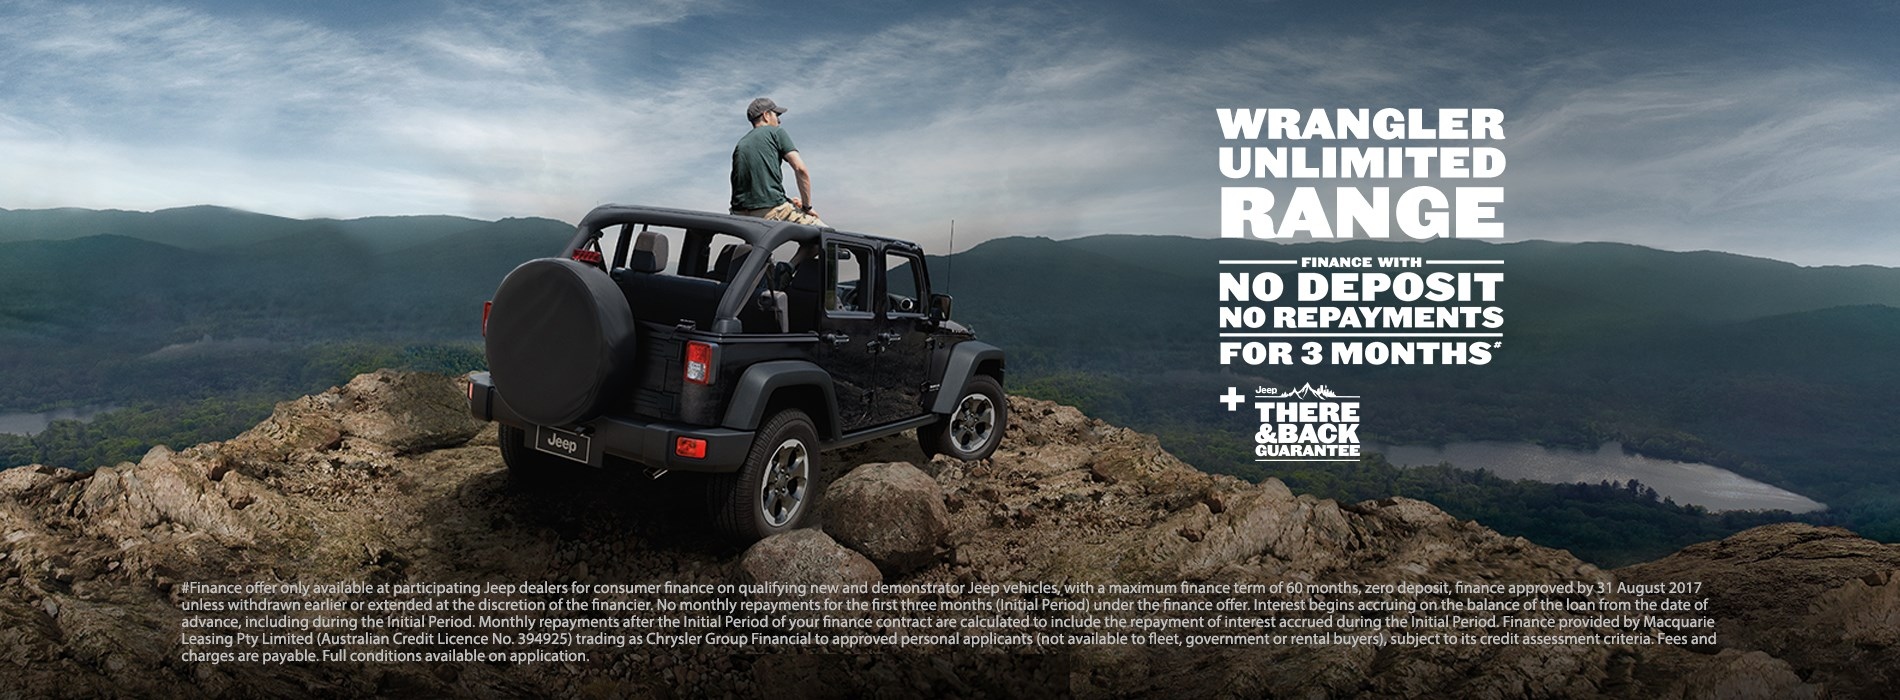 Jeep Wrangler Unlimited Range No payments for 3 months offer